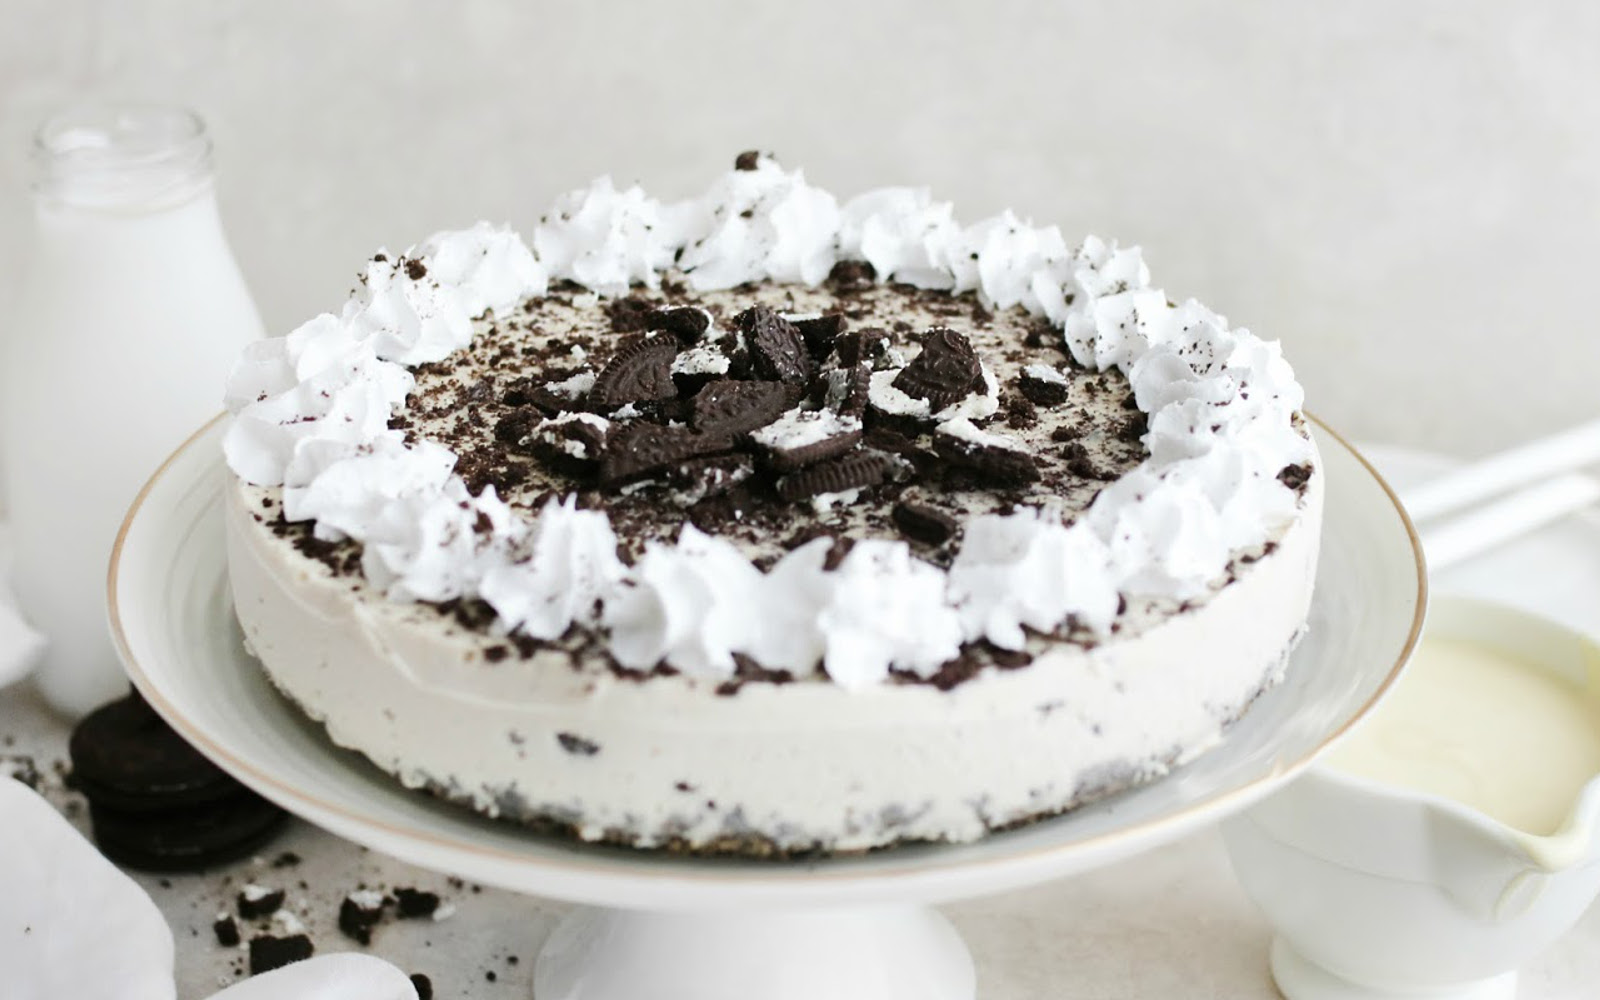 Vegan No-Bake Cookies and Cream Cheesecake with whipped cream